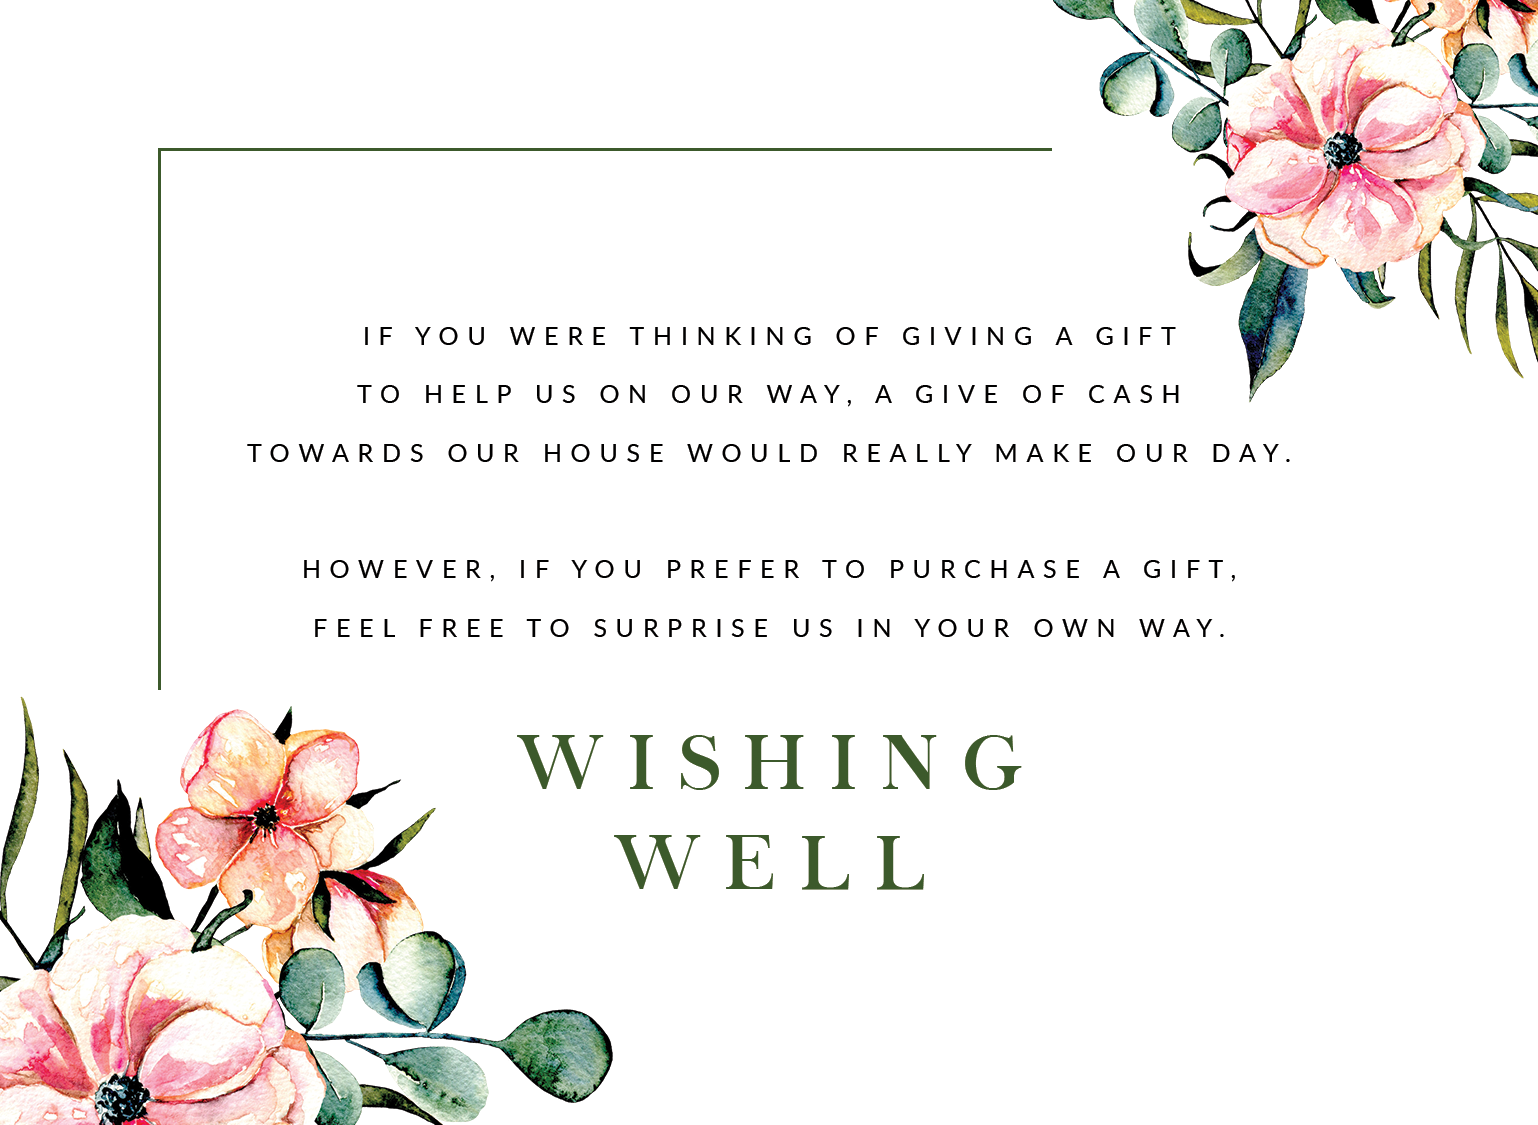 Wishing Well - US A1 CARD SIZE - COLOR 1_RGB.png